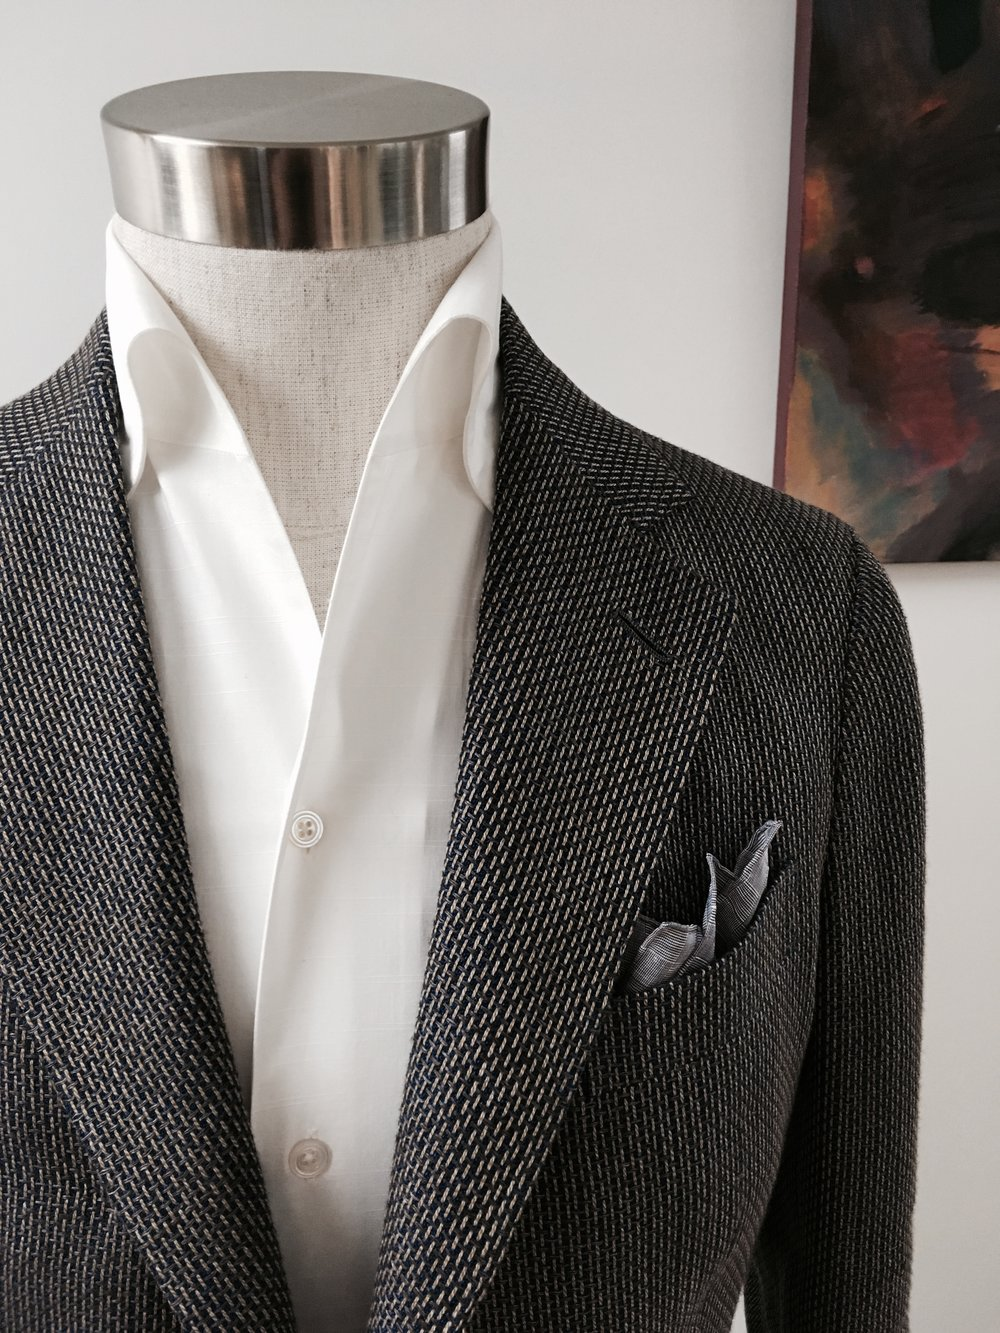 Leisure Soft Jacket in Two Tone Weave. From HK$13,800.